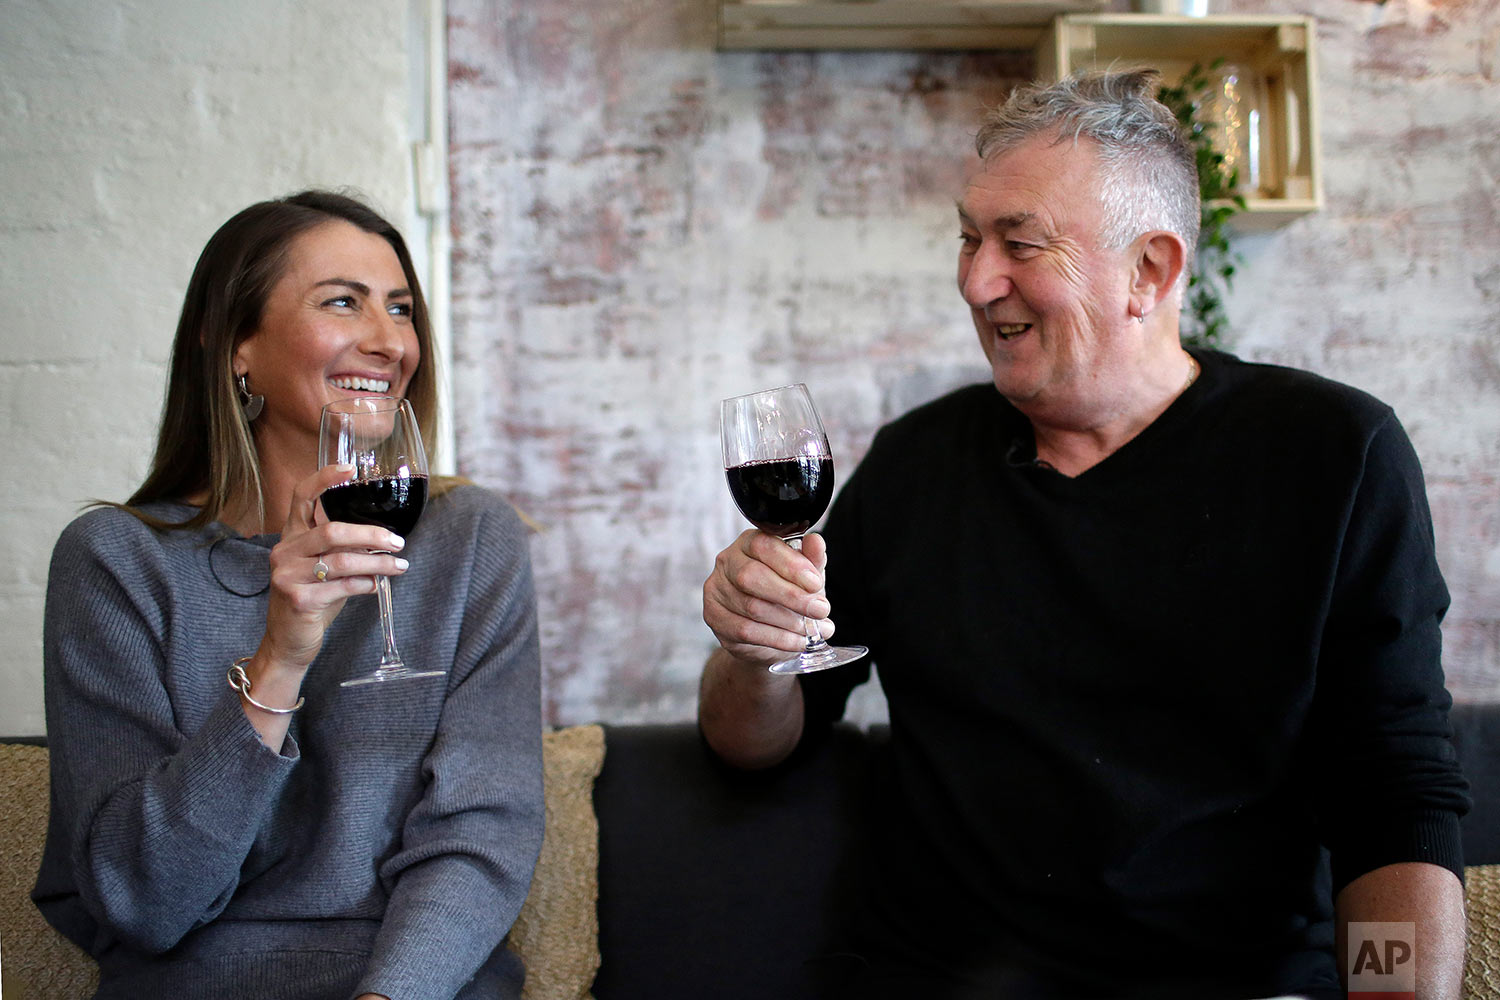 Peter Peacock, 68, right, and Gypsy Diamond, 36, share a laugh over a glass of Shiraz each, their favorite type of wine, in Melbourne, Australia. (AP Photo/Wong Maye-E)